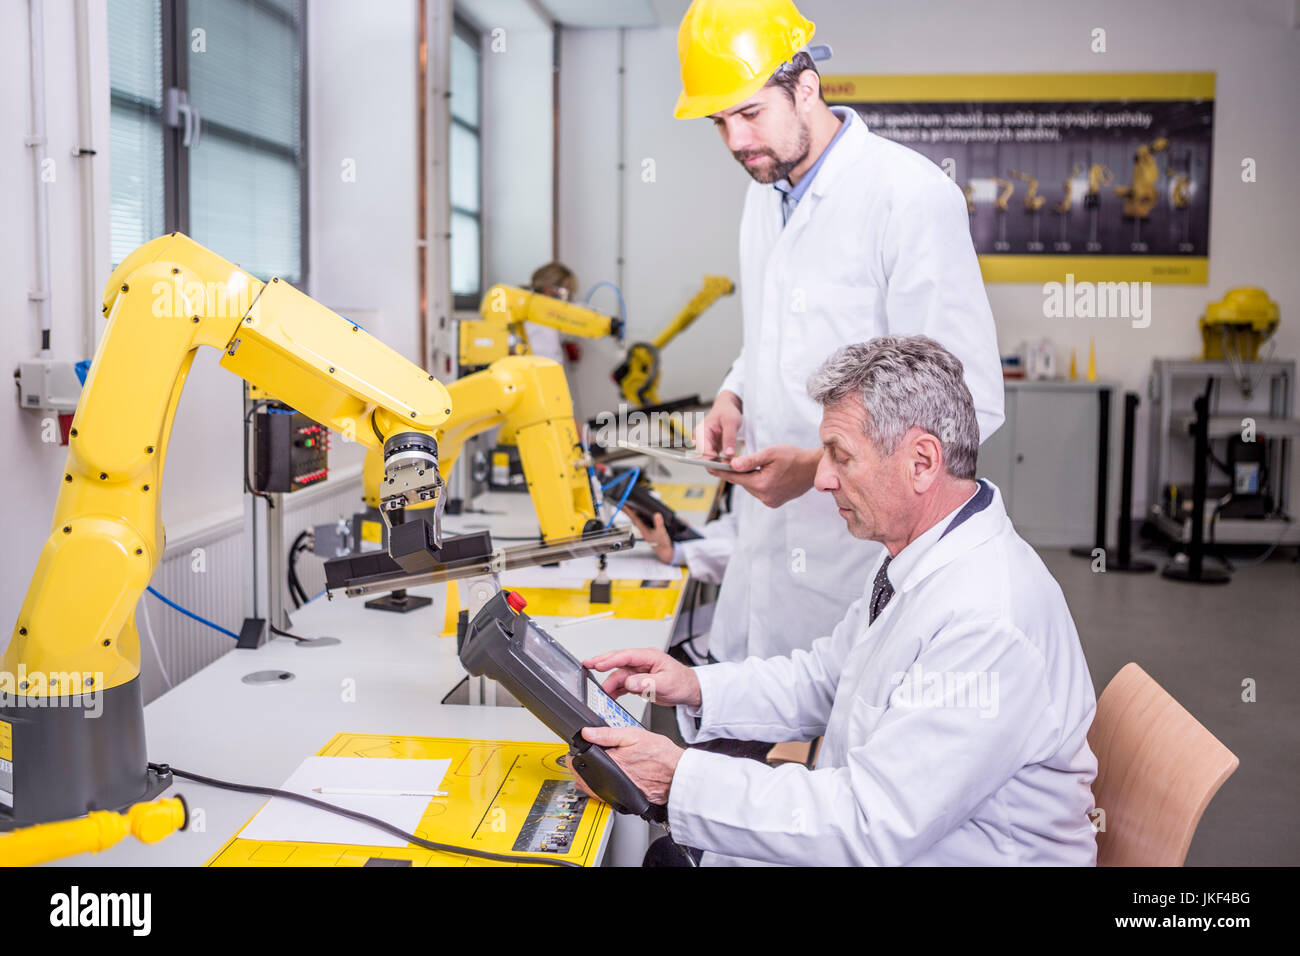 Two engineers in factory looking at device - Stock Image